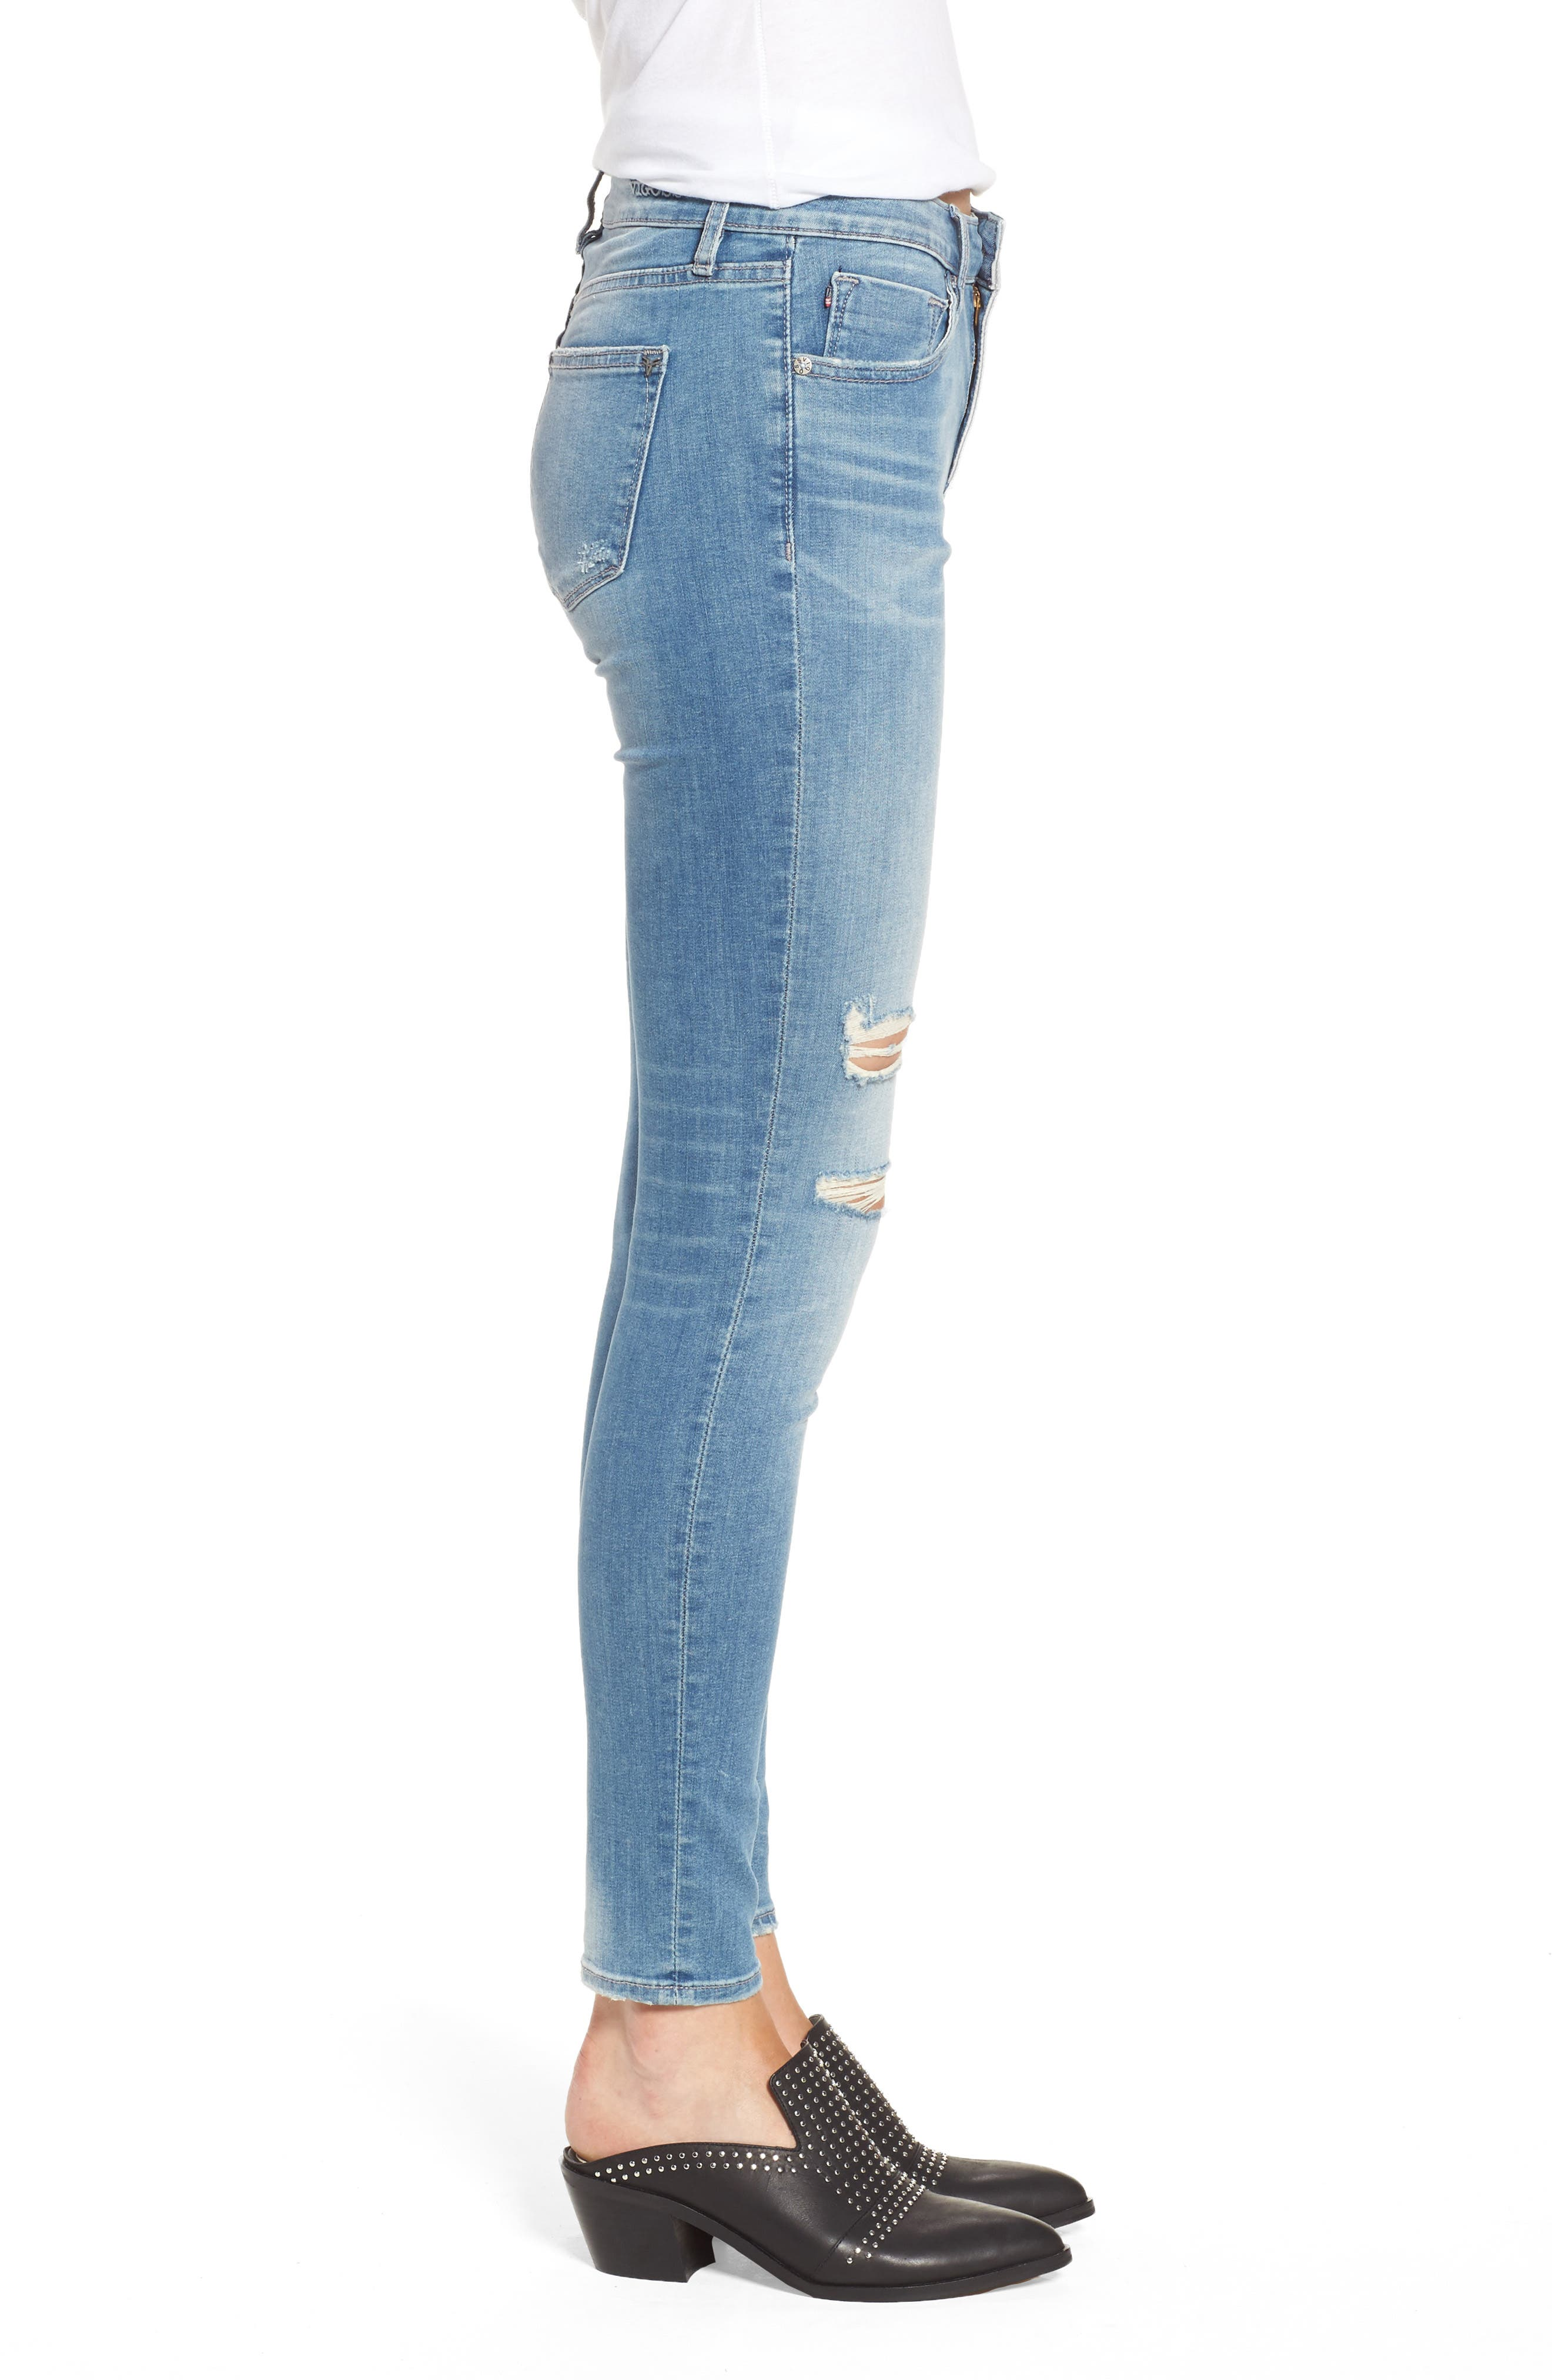 Marley Ripped Skinny Jeans,                             Alternate thumbnail 3, color,